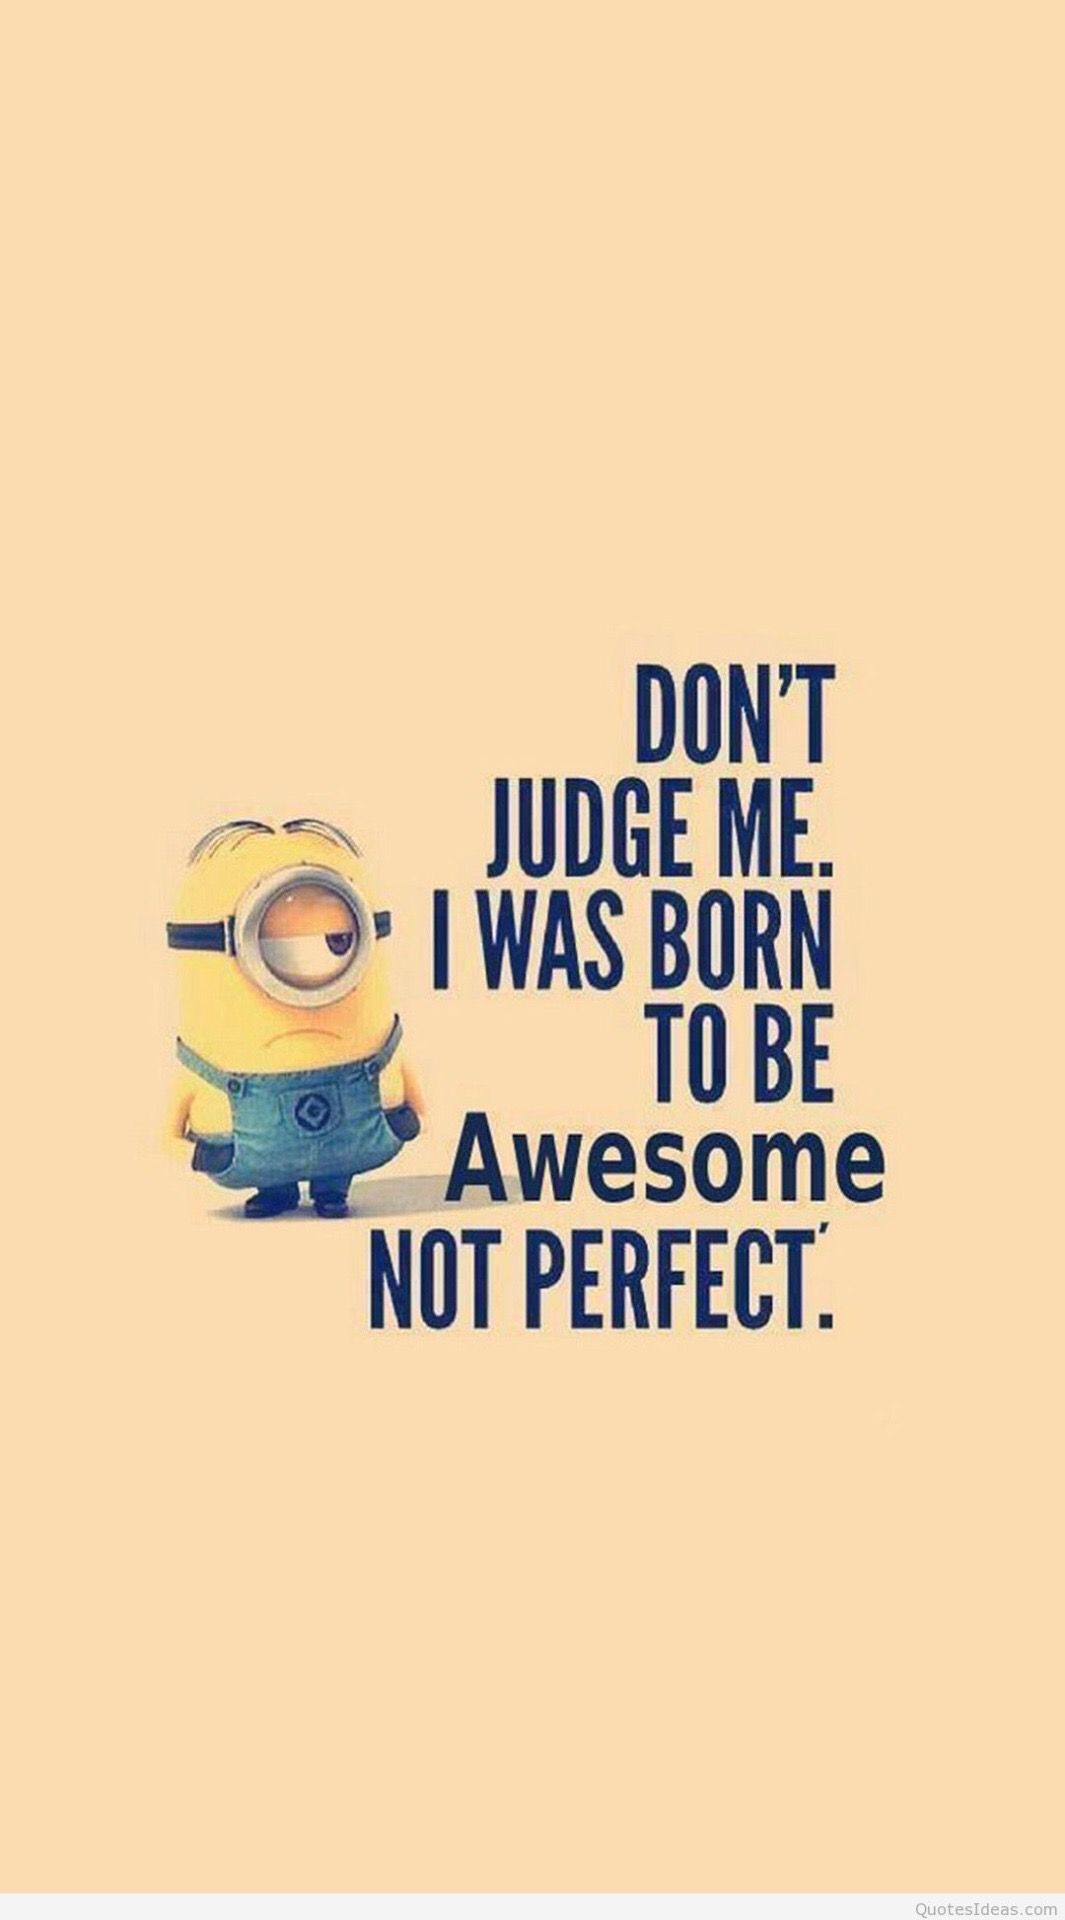 Minions, Couple Quotes, Teen, Wallpaper, Madness, Bra, Backgrounds,  Wallpaper Desktop, Minion Stuff